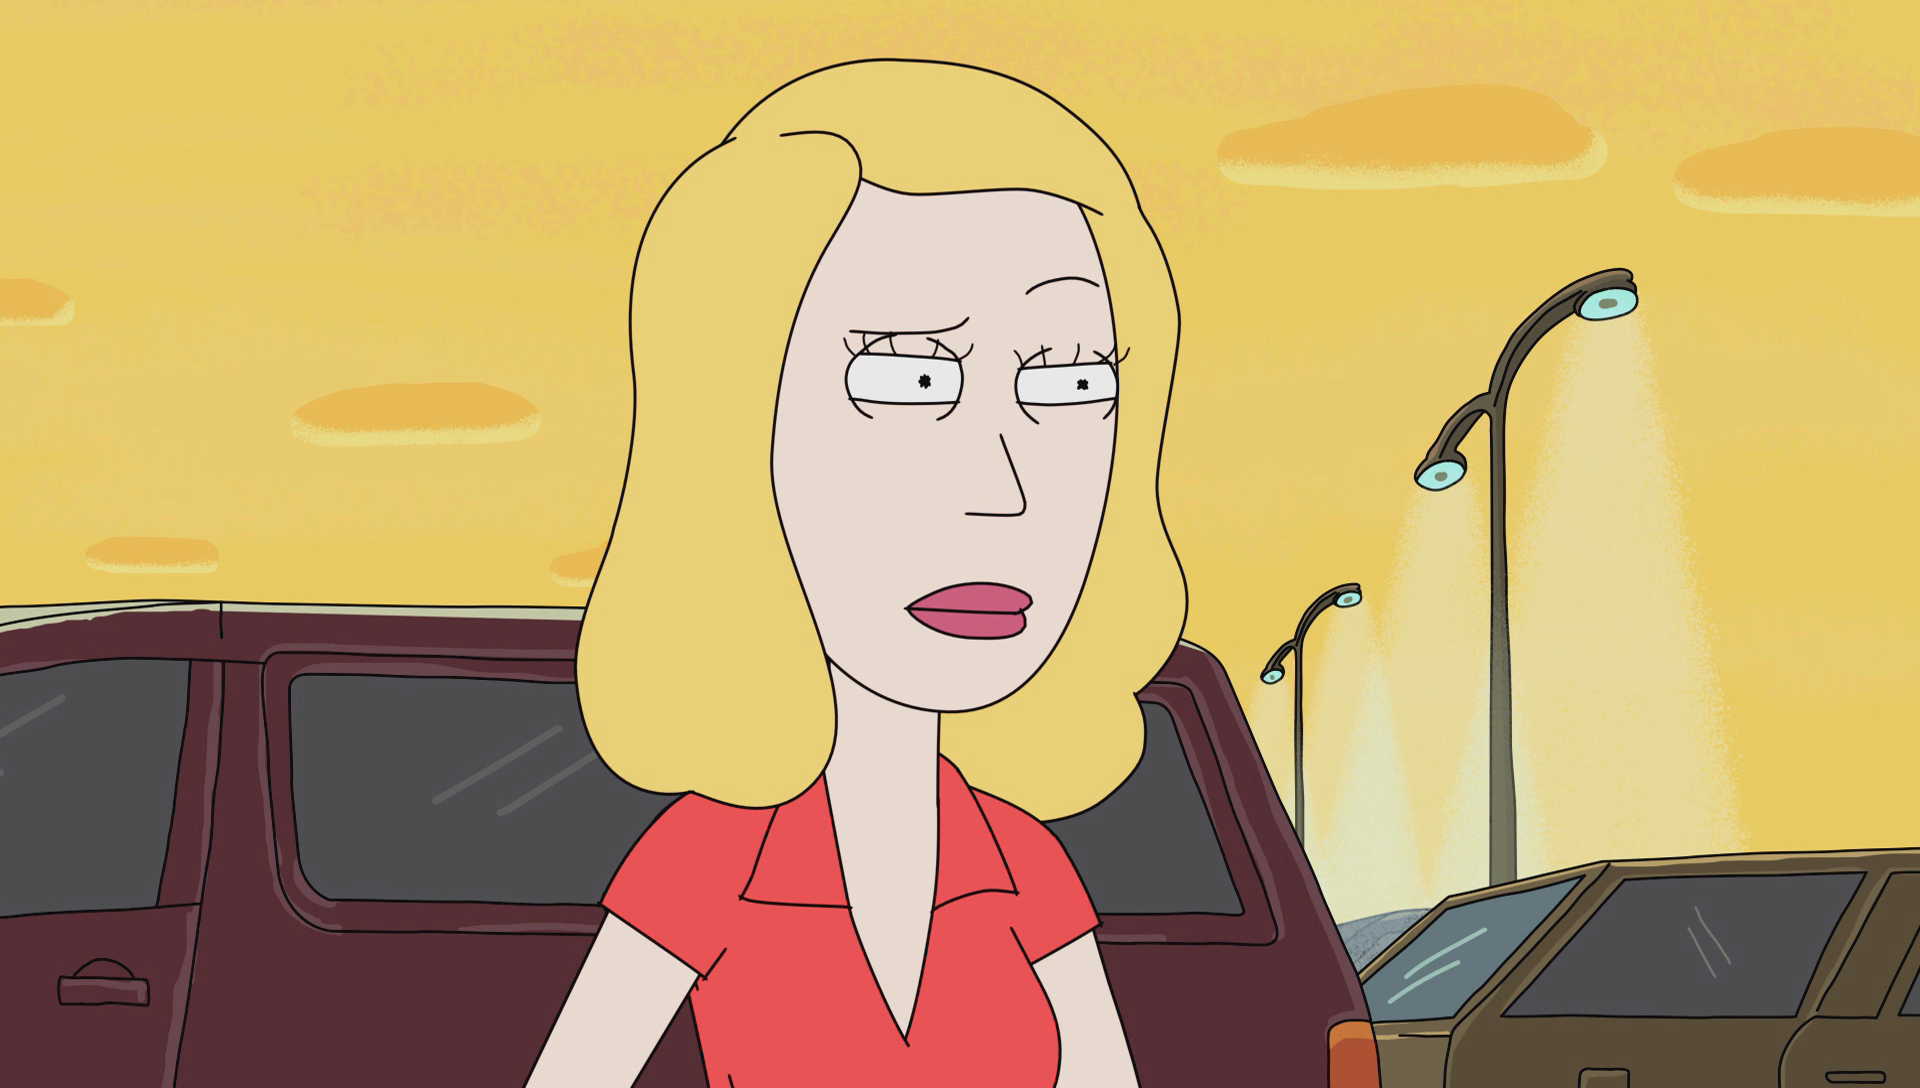 beth rick and morty